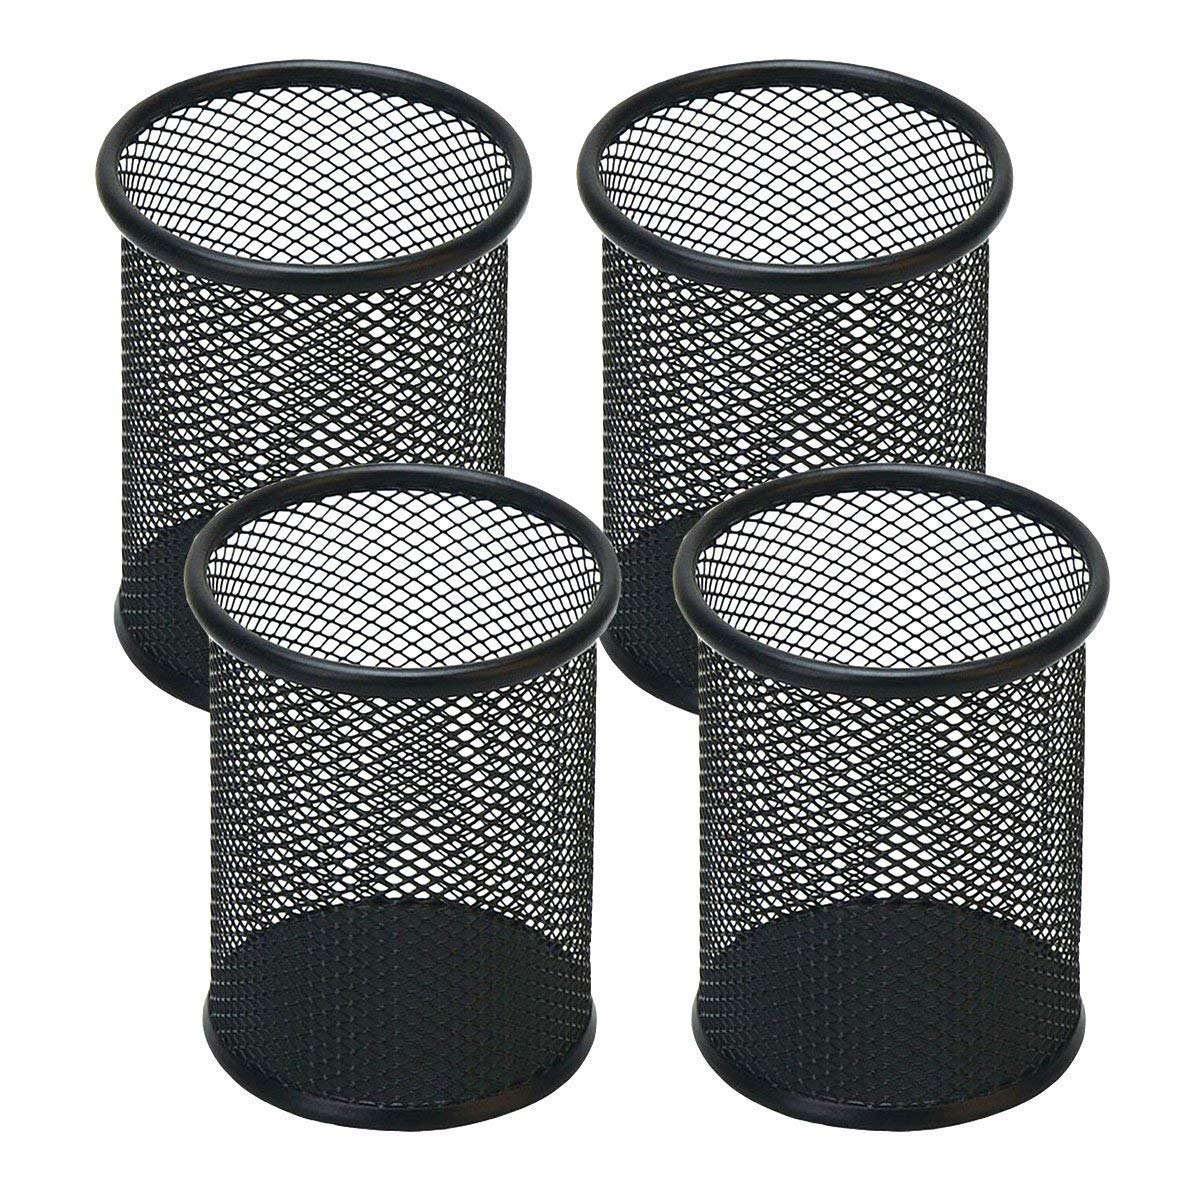 4 Pack Black 4'' inch Round Cylinder Shape Mesh Pen Holder Metal Collection Jumbo Pencil Cup Pen Organizer Medium Size